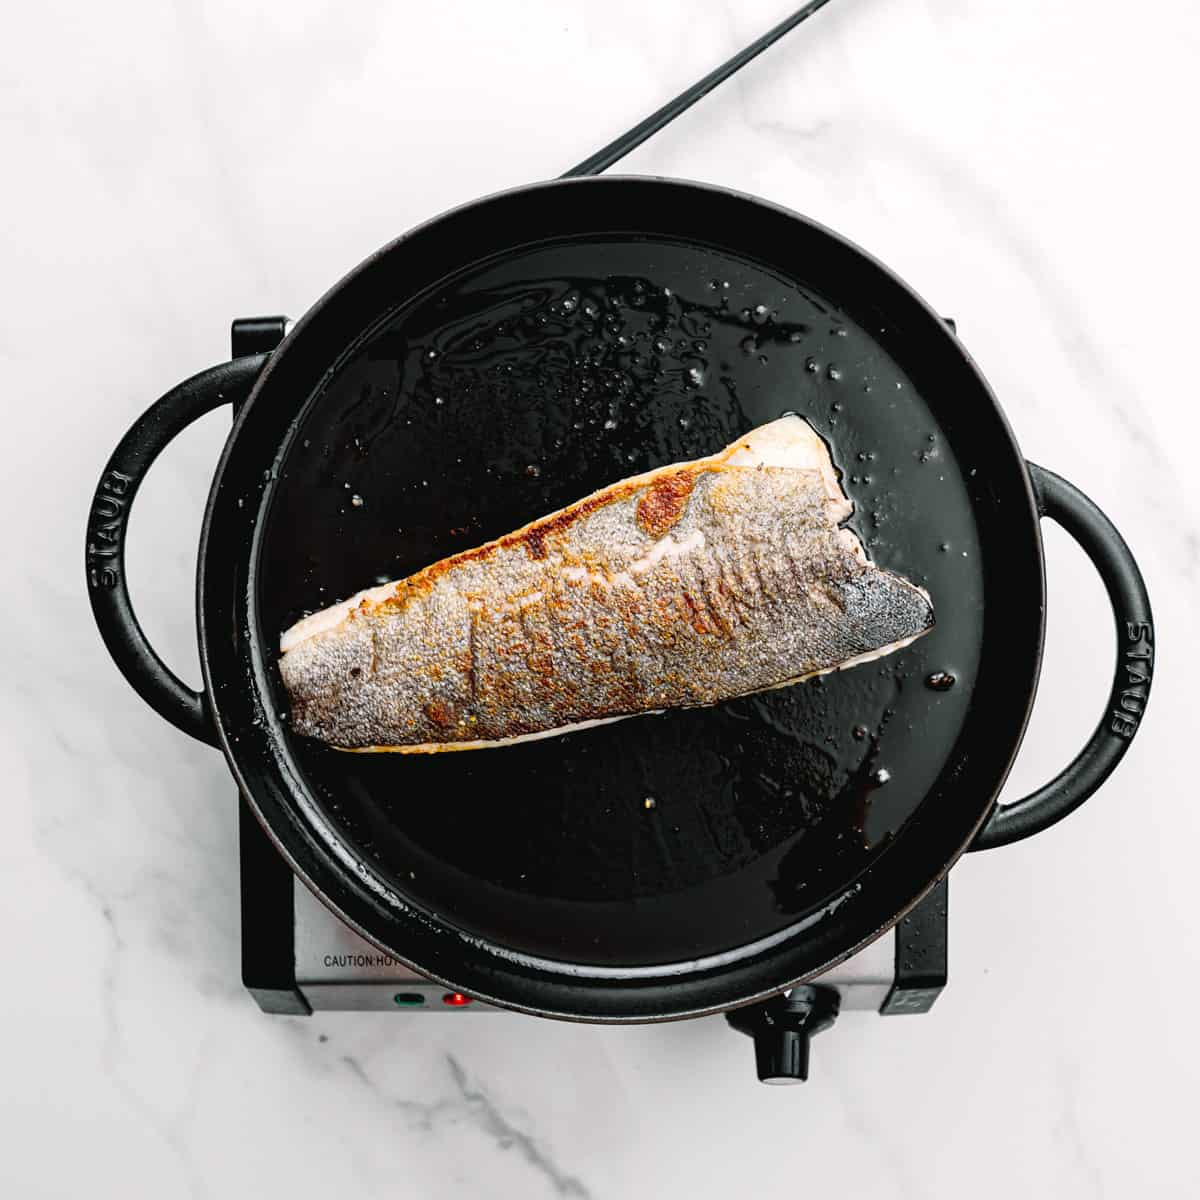 cook the fish fillets in a cast iron skillet.